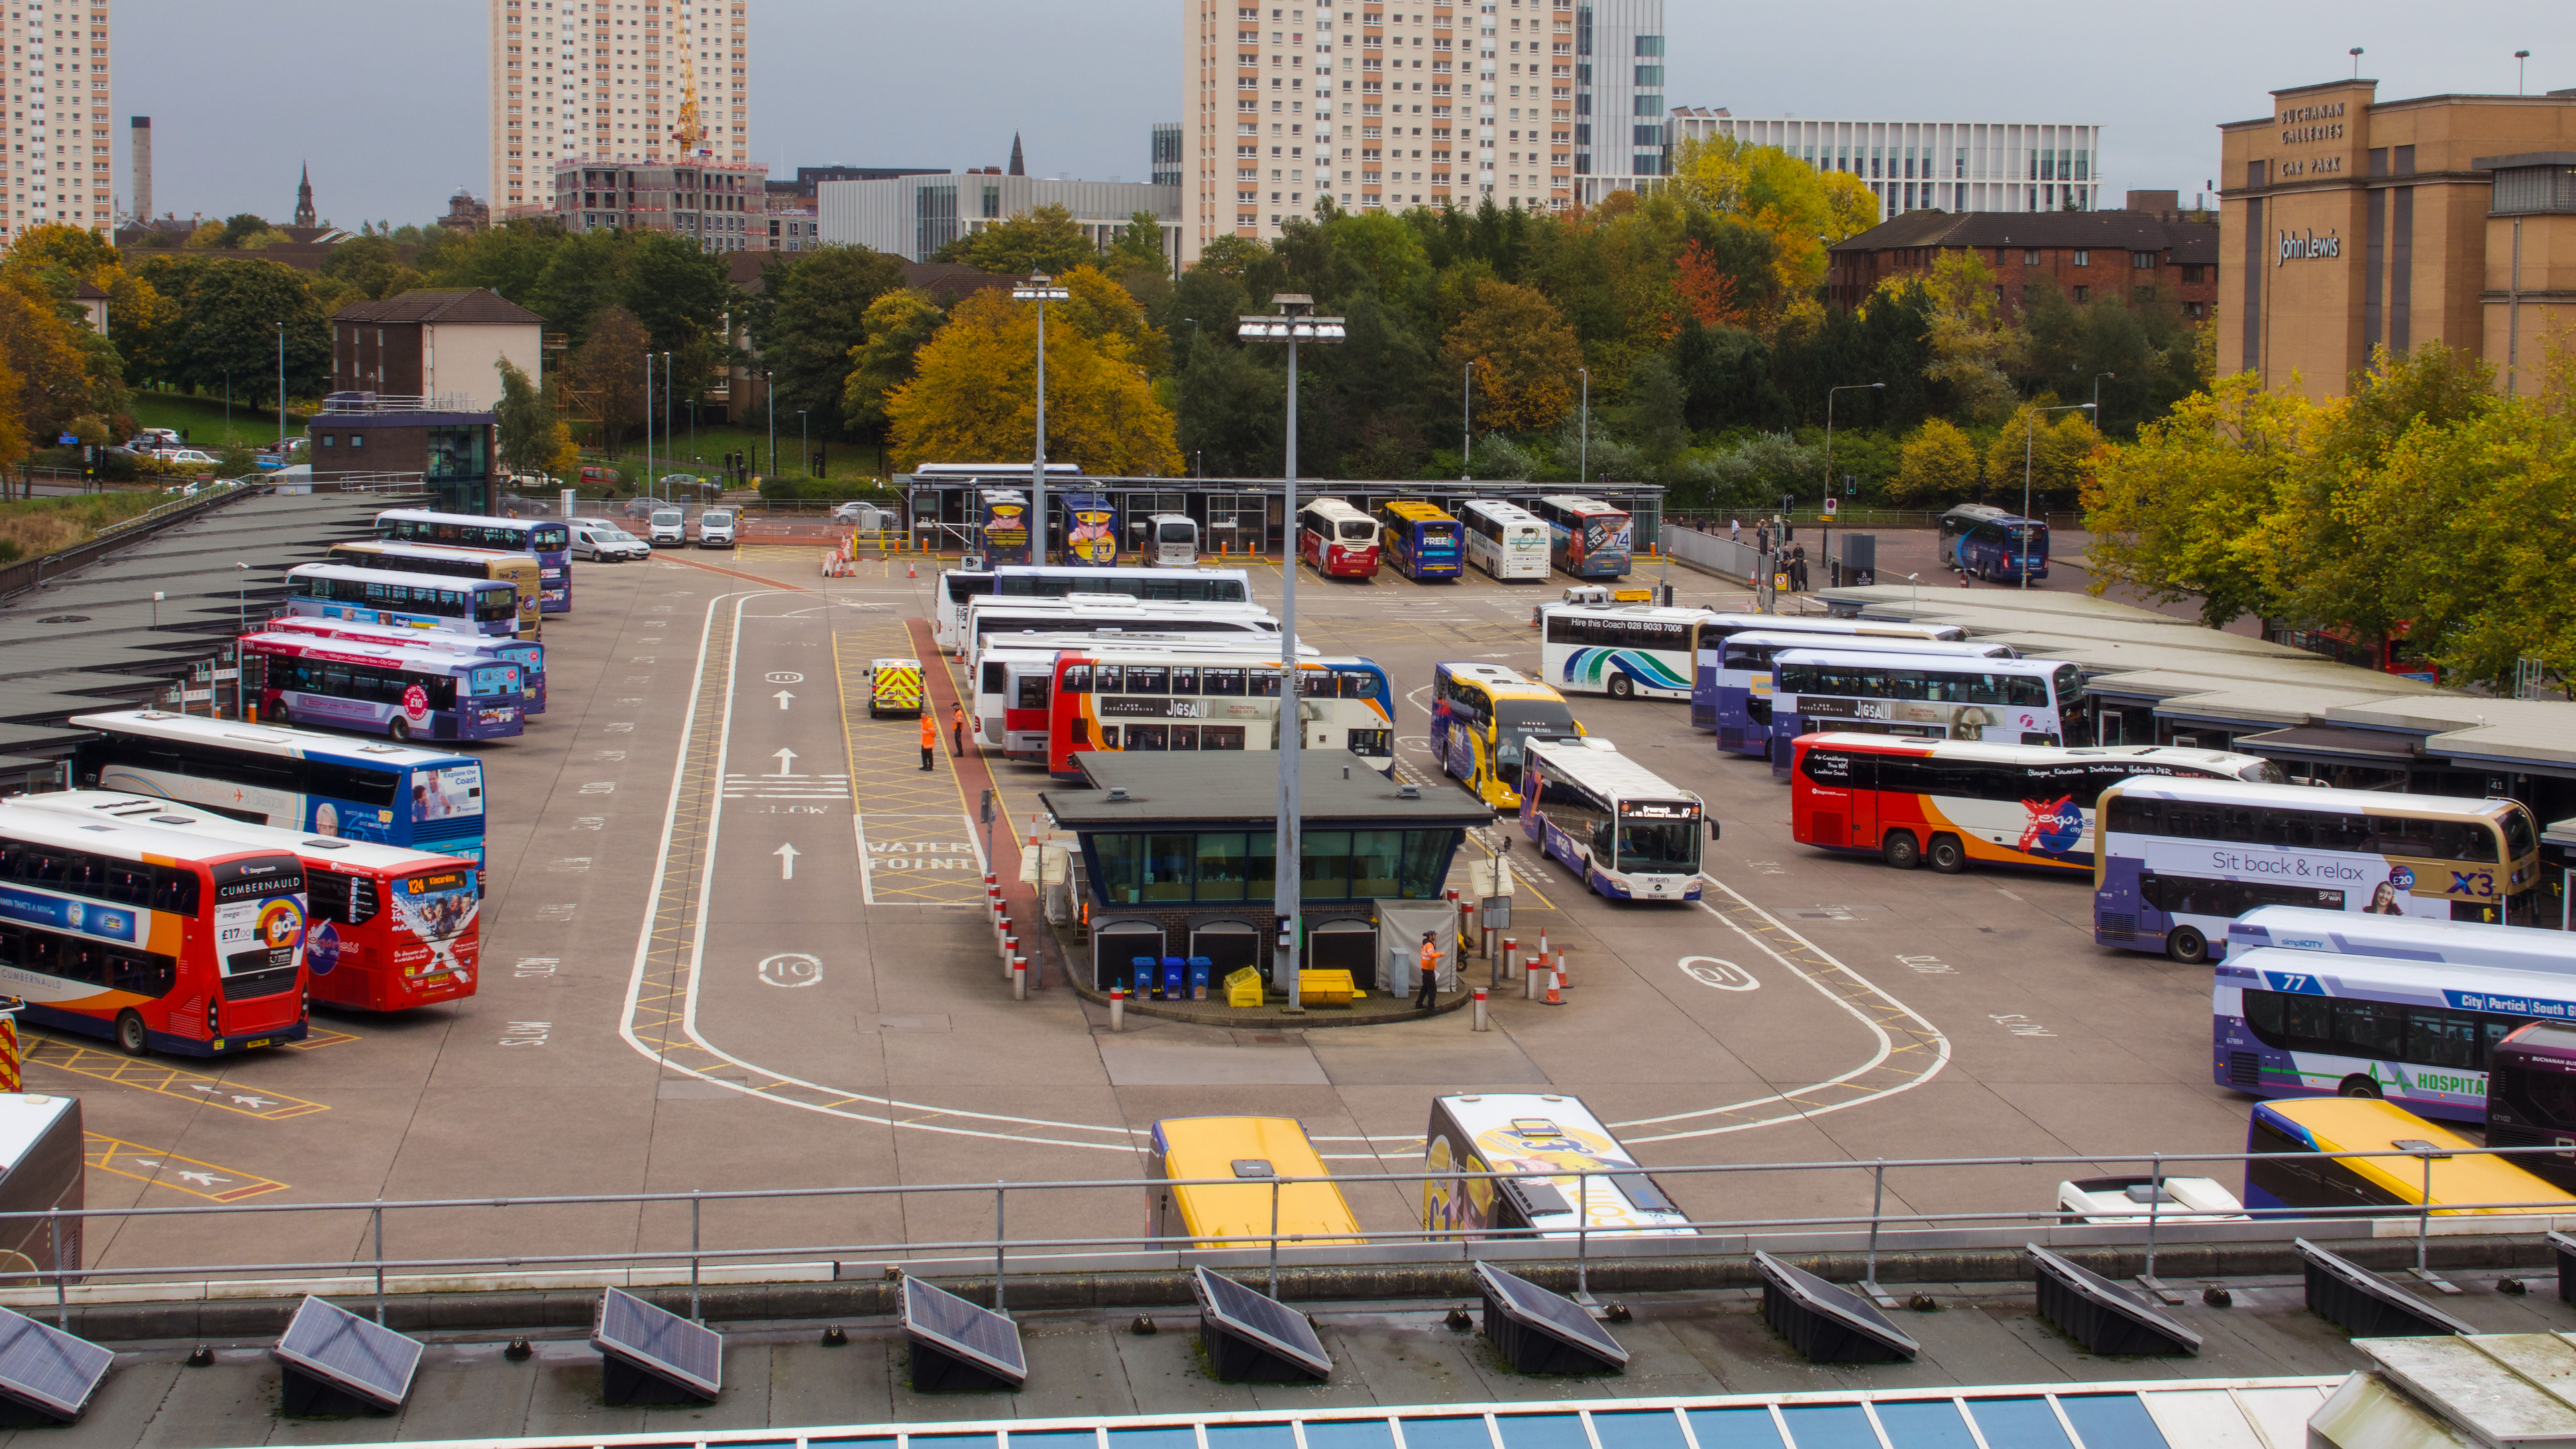 More than half of the 4,600 surveyed believe buses are often late (Getty Images/iStock)